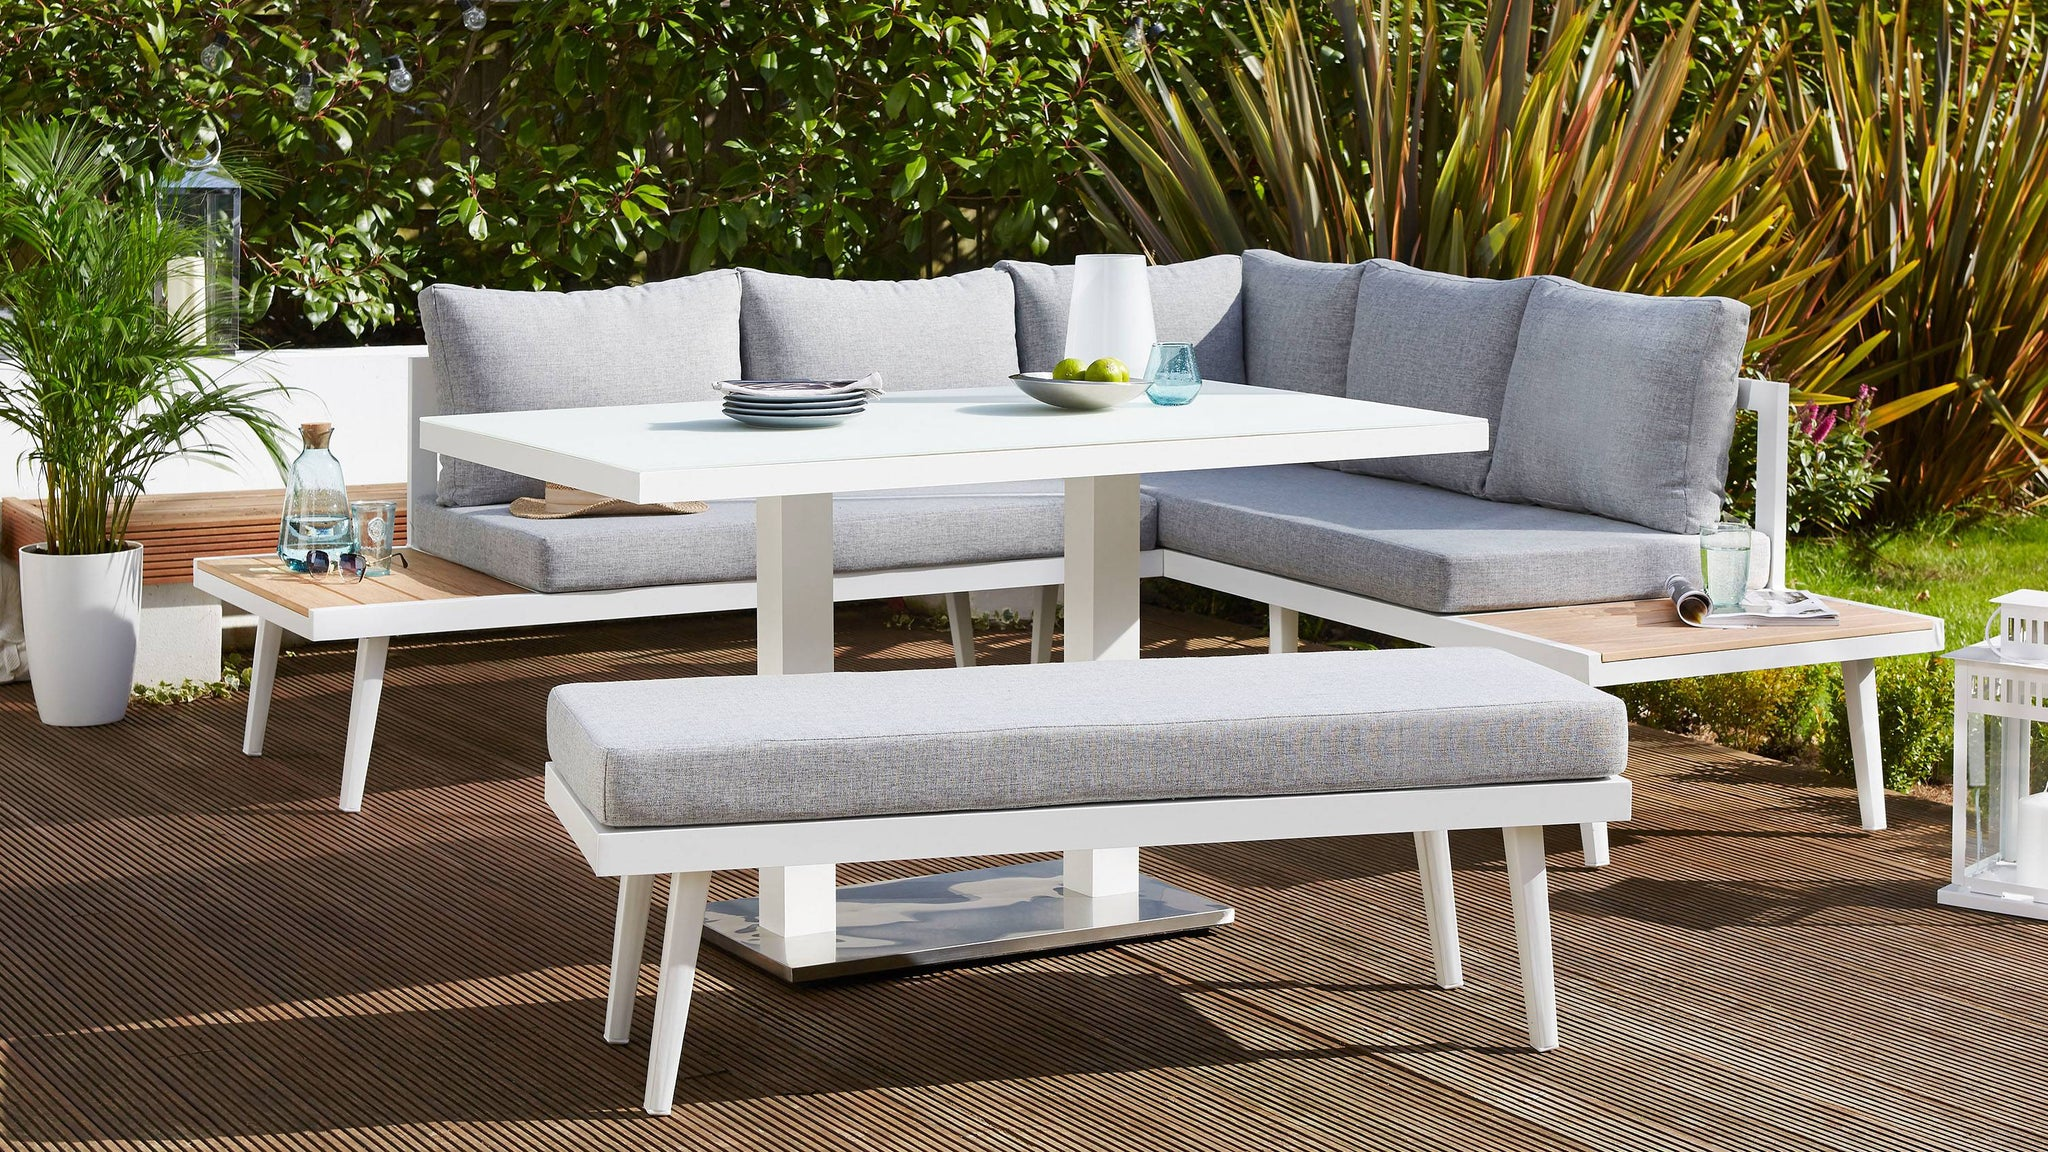 Z DROPPED - Palermo White 2 Seater Outdoor Bench